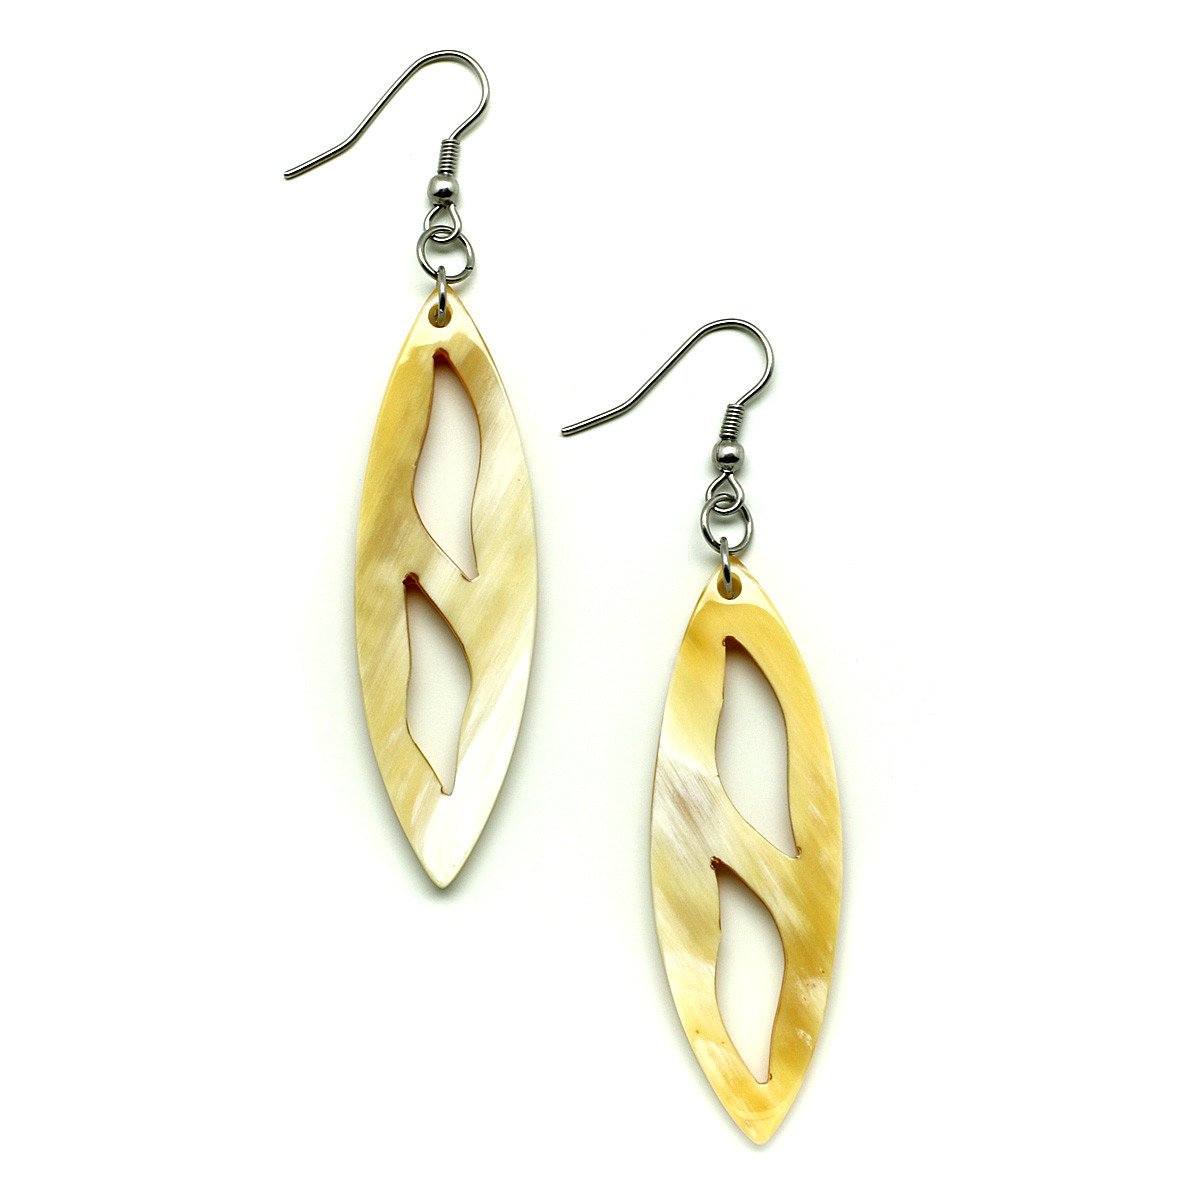 Horn Earrings #12064 - HORN.JEWELRY by QueCraft